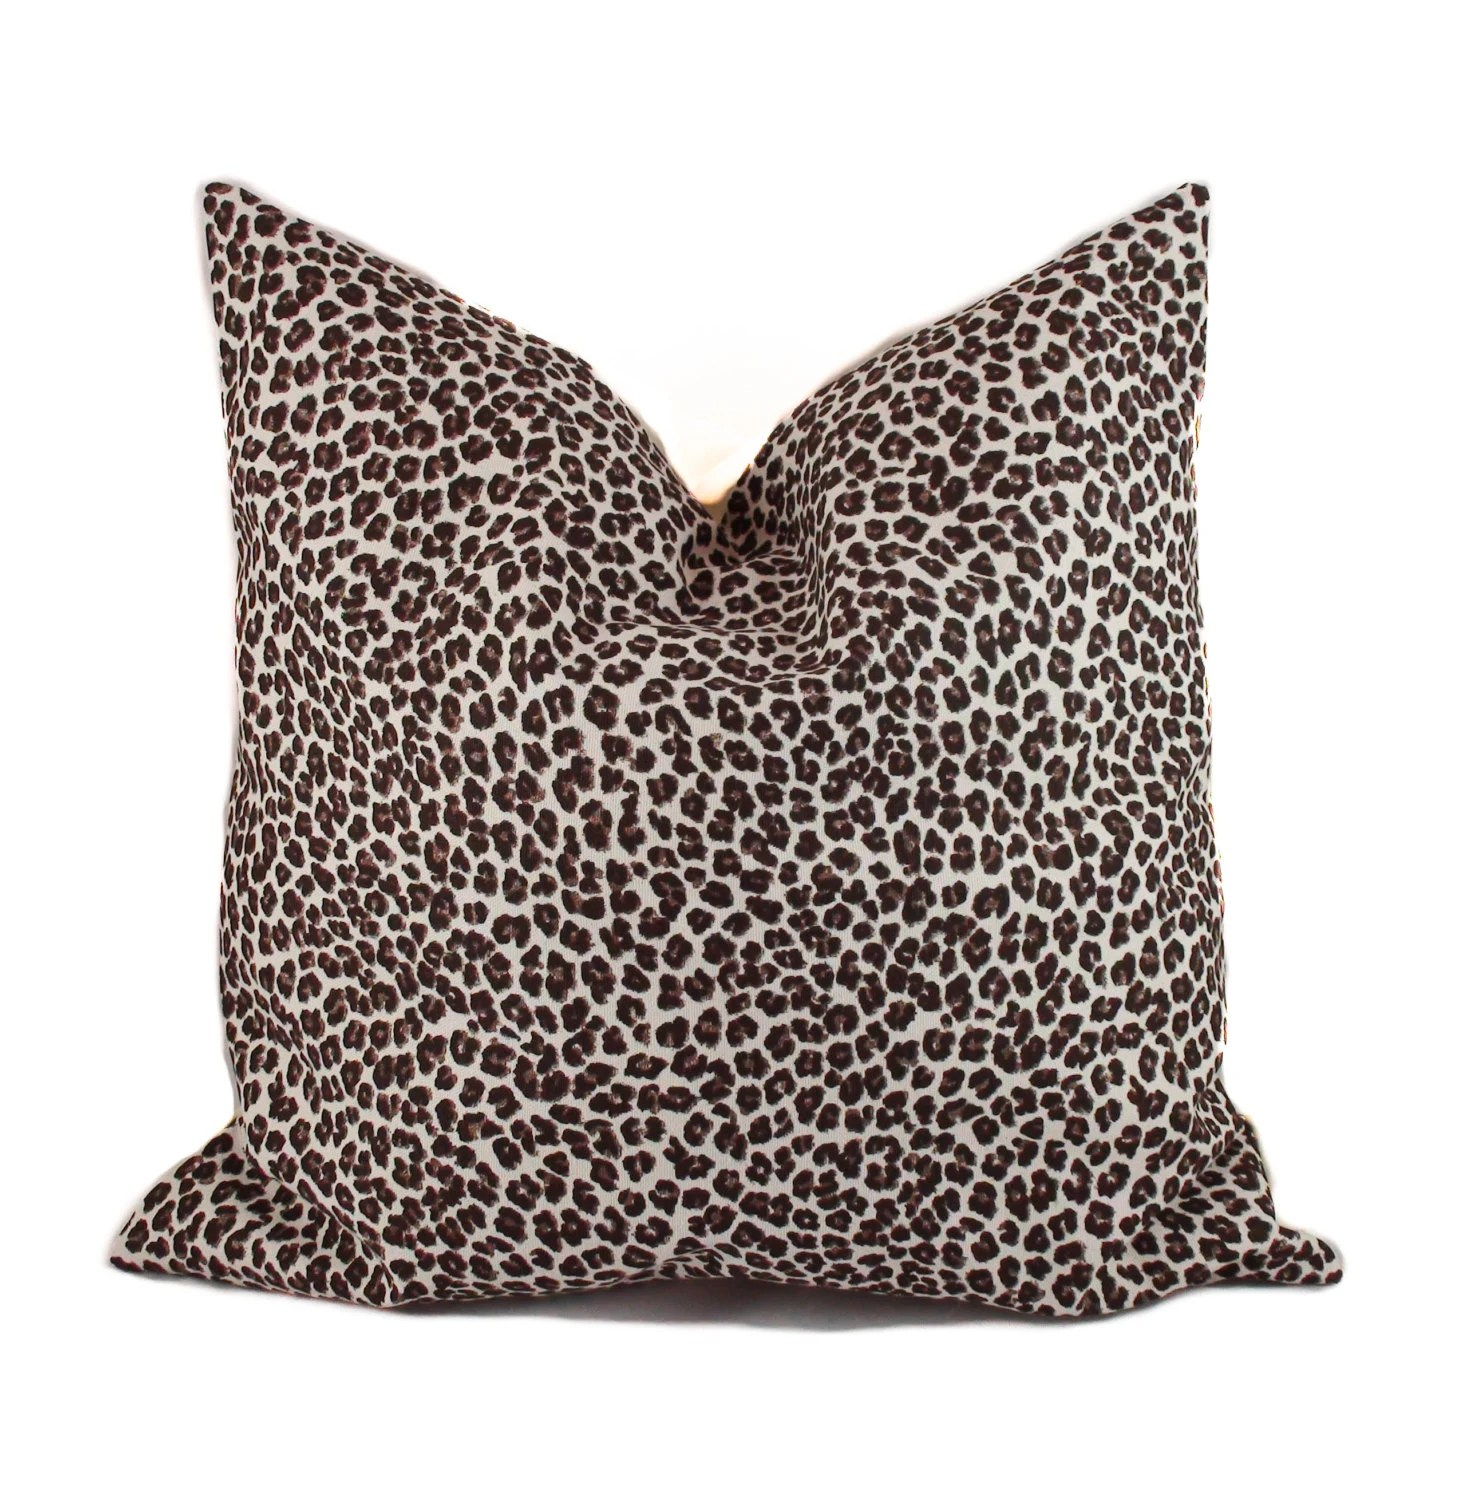 Leopard Pillow 18x18 Animal Print Pillow Decorative Pillow